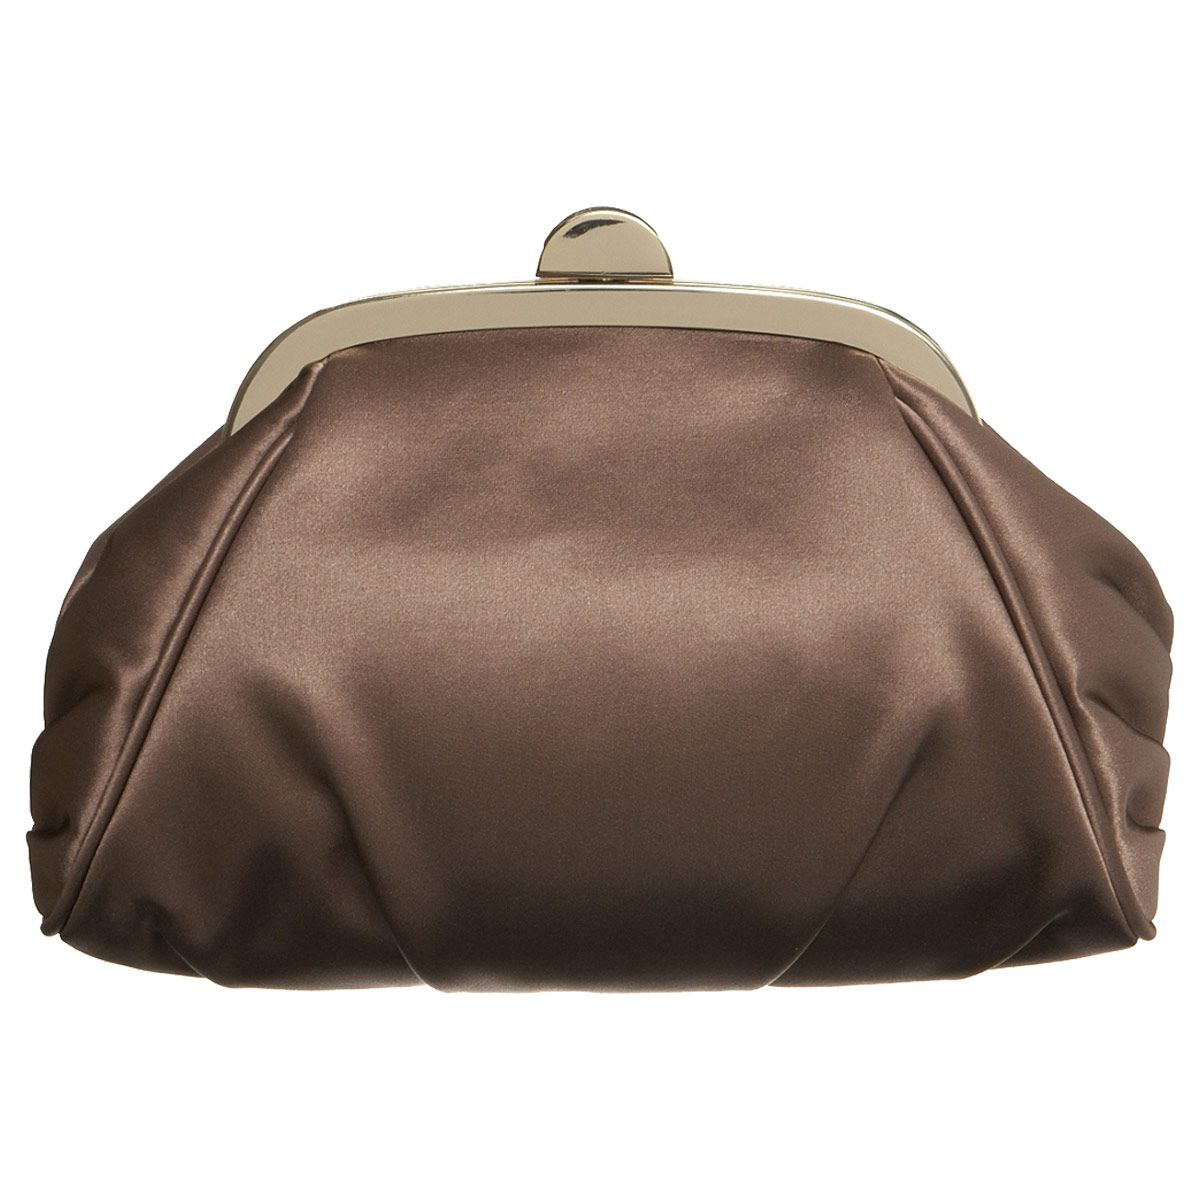 Aurelia B plain satin bag